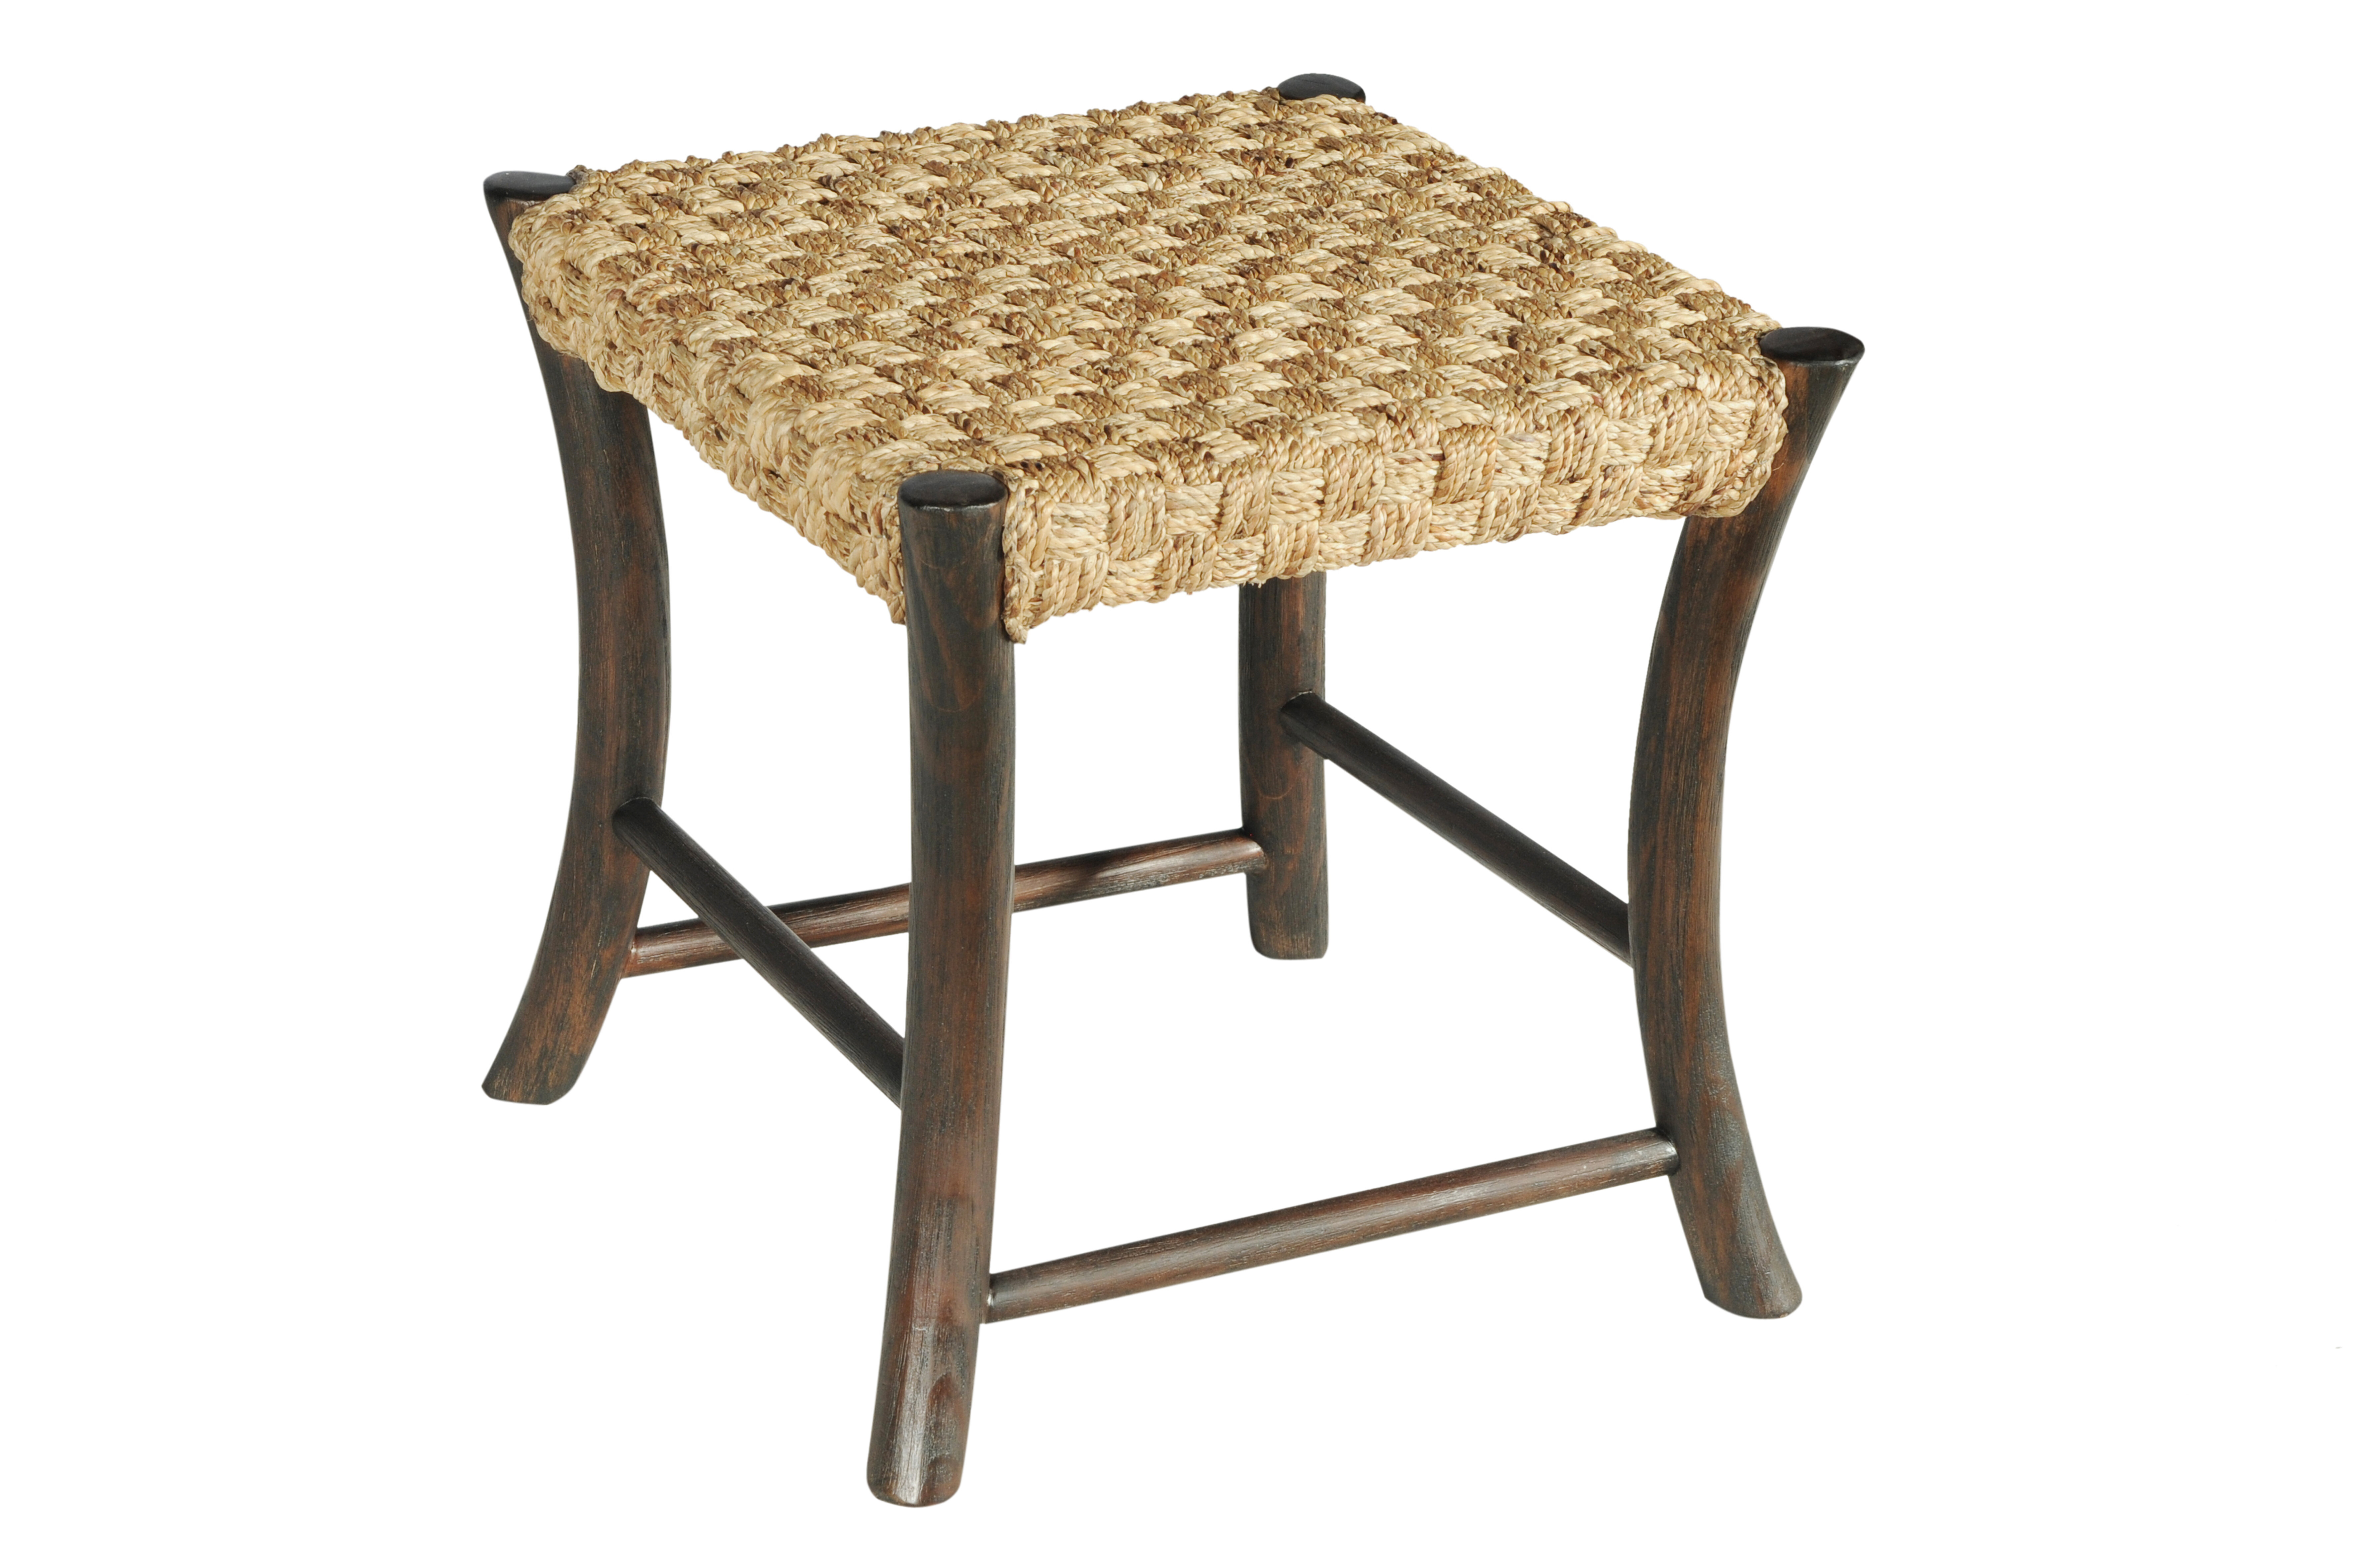 Wondrous Mousseau Vanity Stool Andrewgaddart Wooden Chair Designs For Living Room Andrewgaddartcom